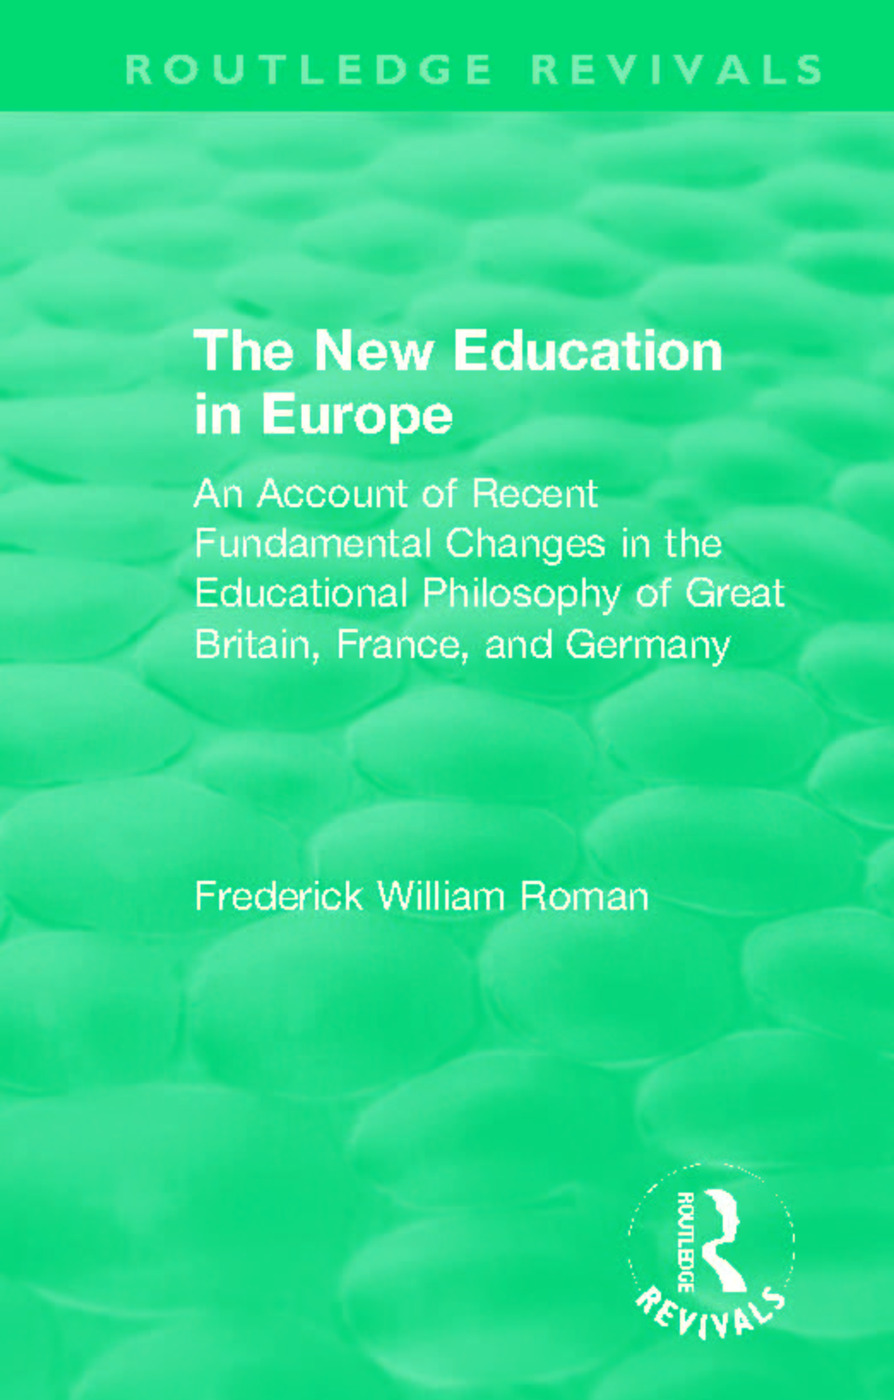 The New Education in Europe: An Account of Recent Fundamental Changes in the Educational Philosophy of Great Britain, France, and Germany book cover